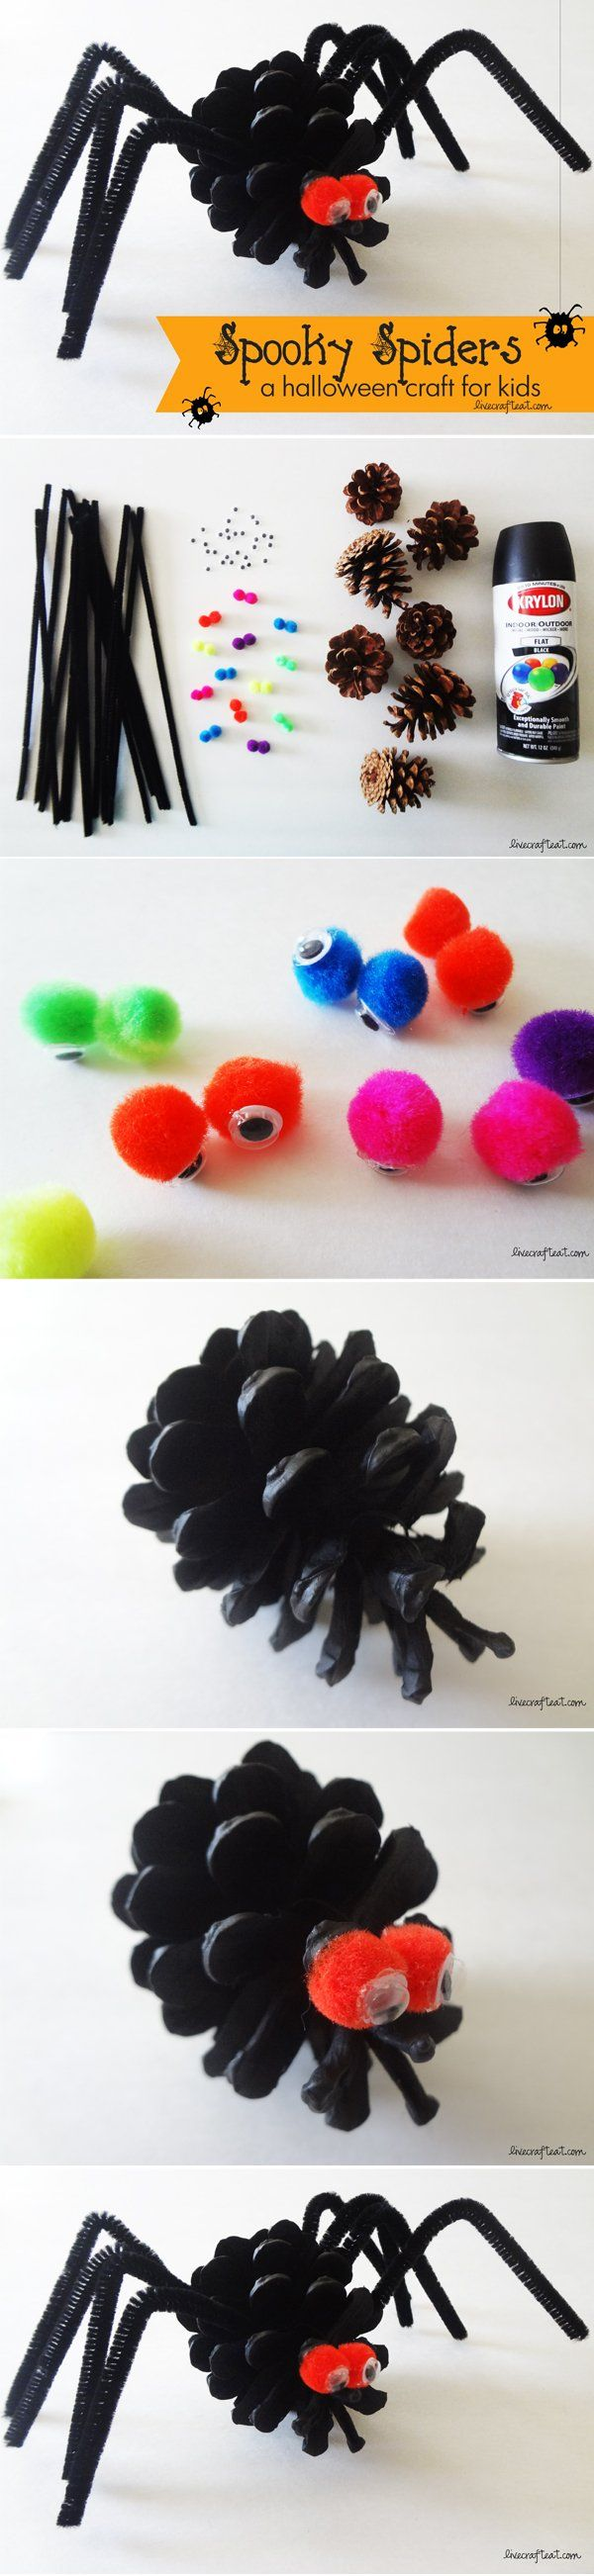 an easy halloween spider craft for kids - uses only a few inexpensive craft supplies that you probably already have on hand. so cute for decorating your house/front door! | www.livecrafteat.com   #halloween #crafts